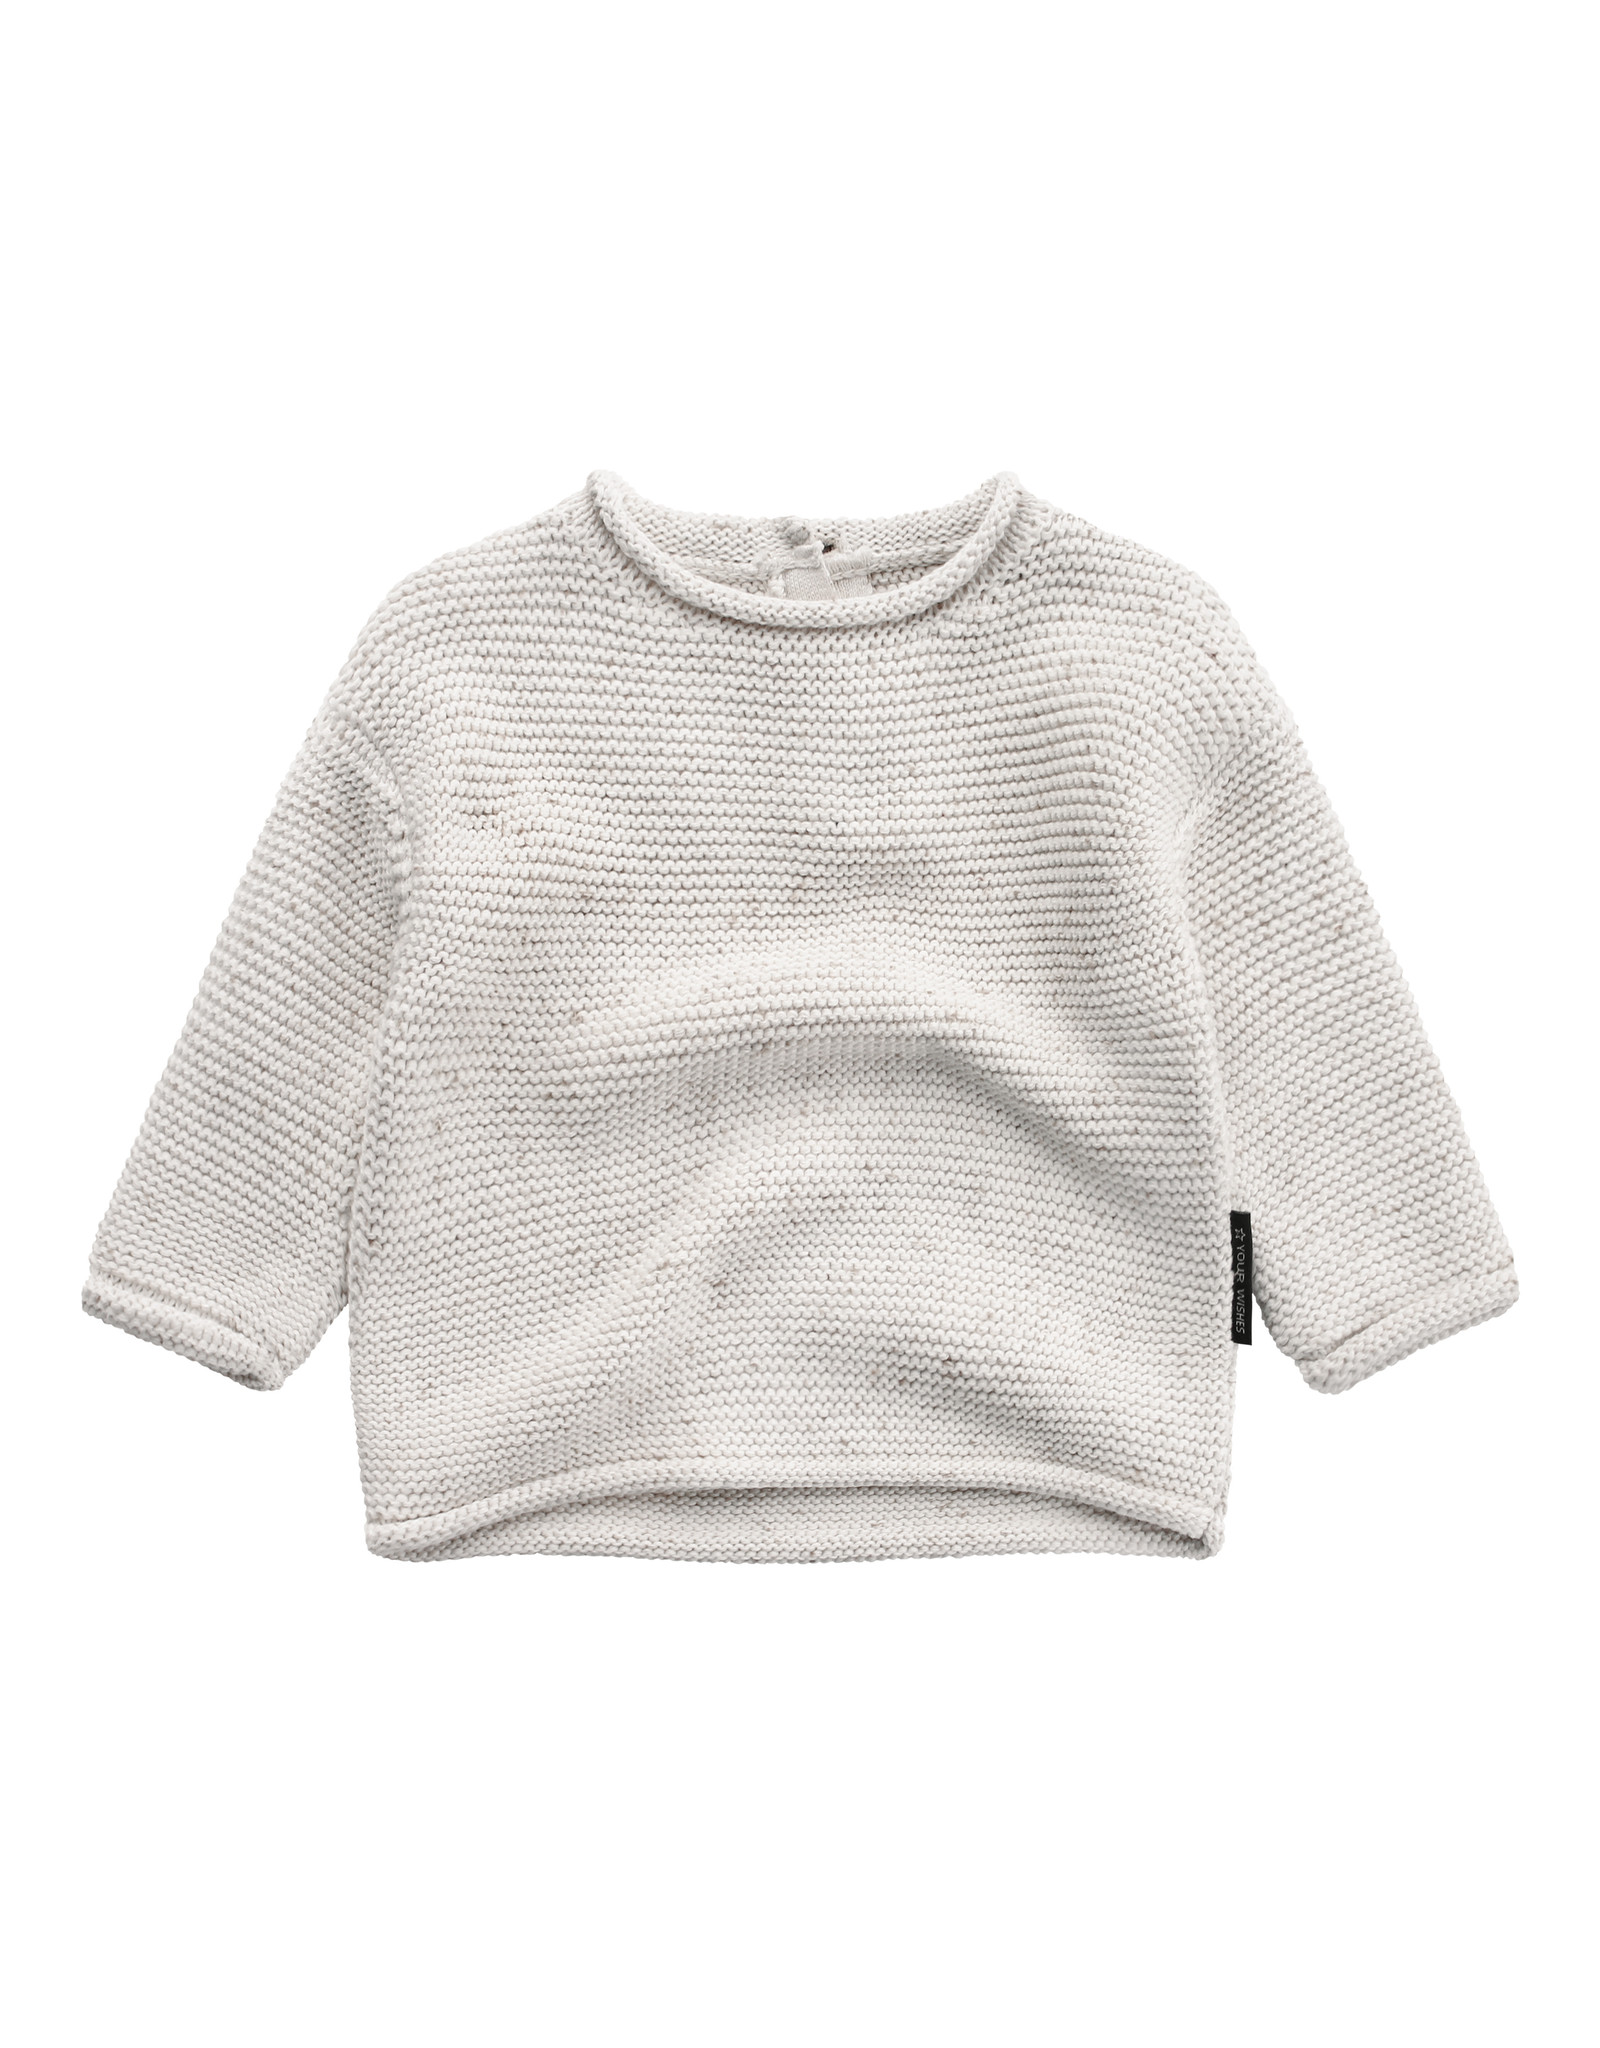 Your Wishes Knit | Boxy Sweater maat 74/80